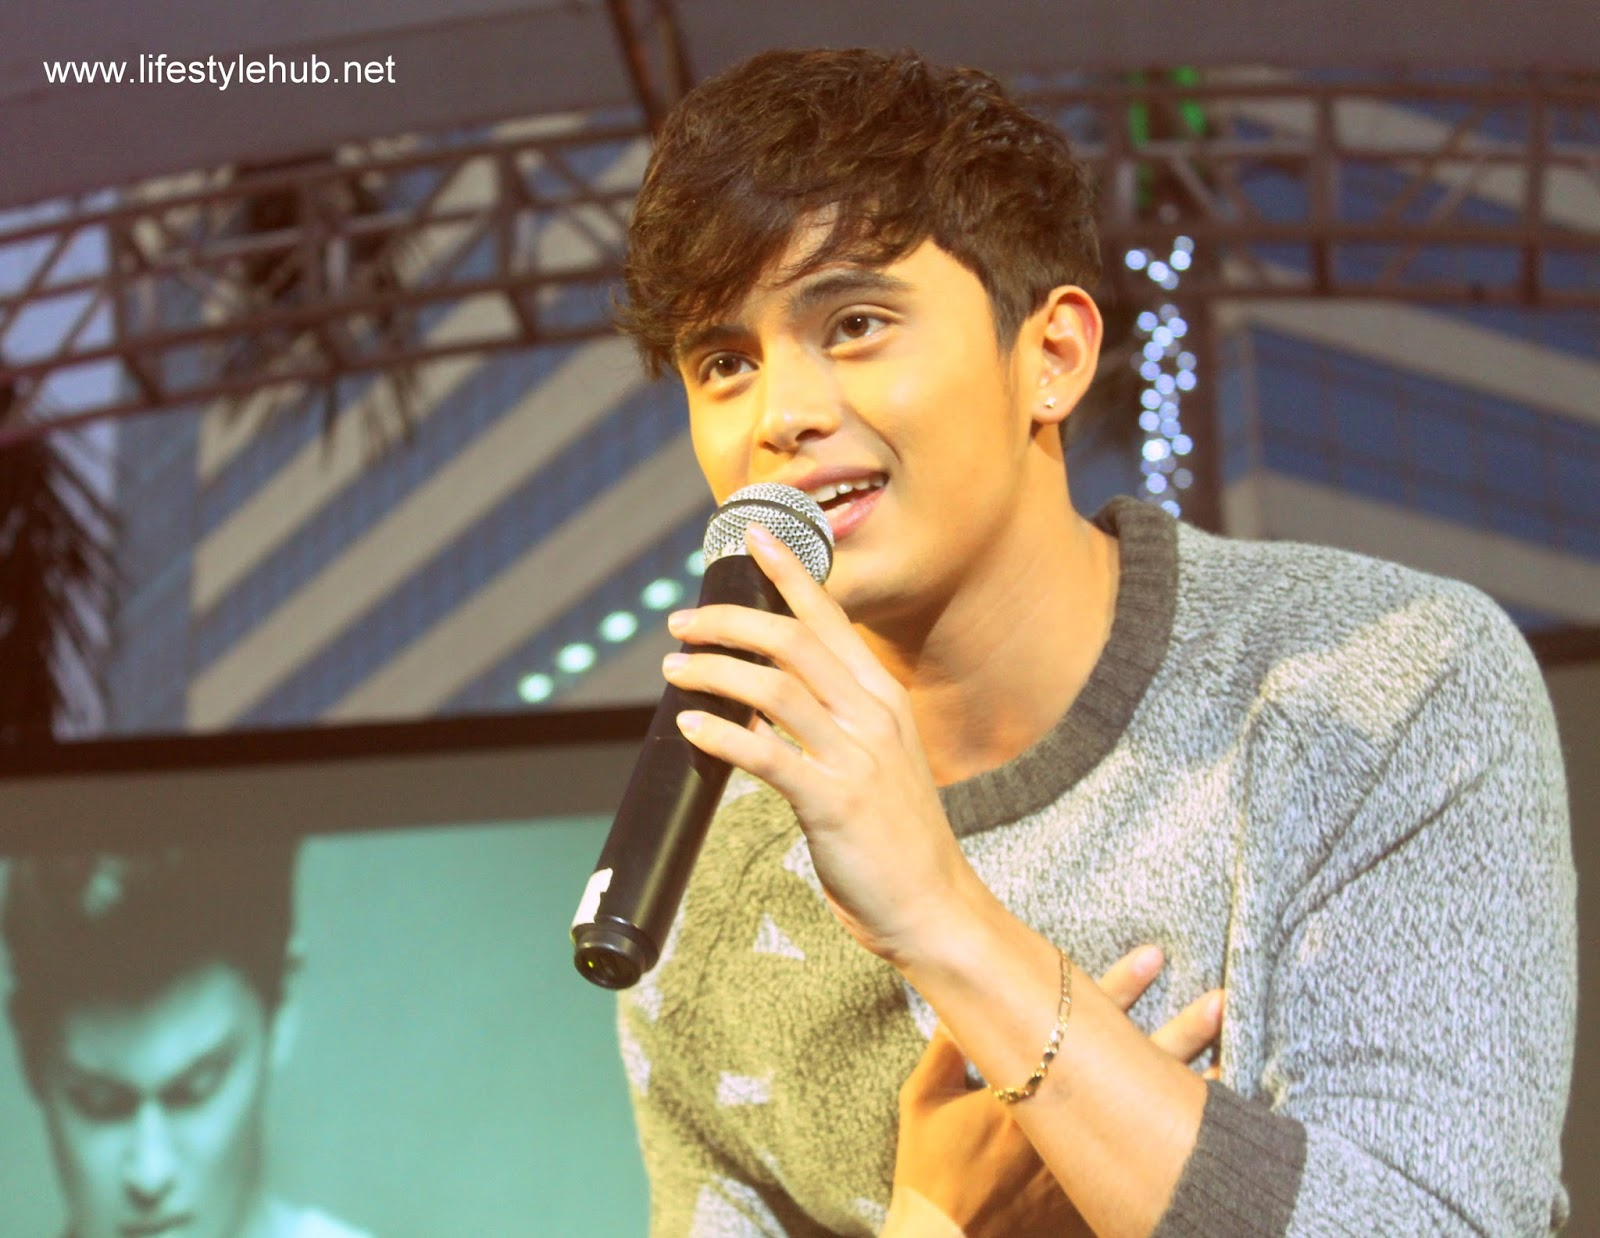 james reid up close